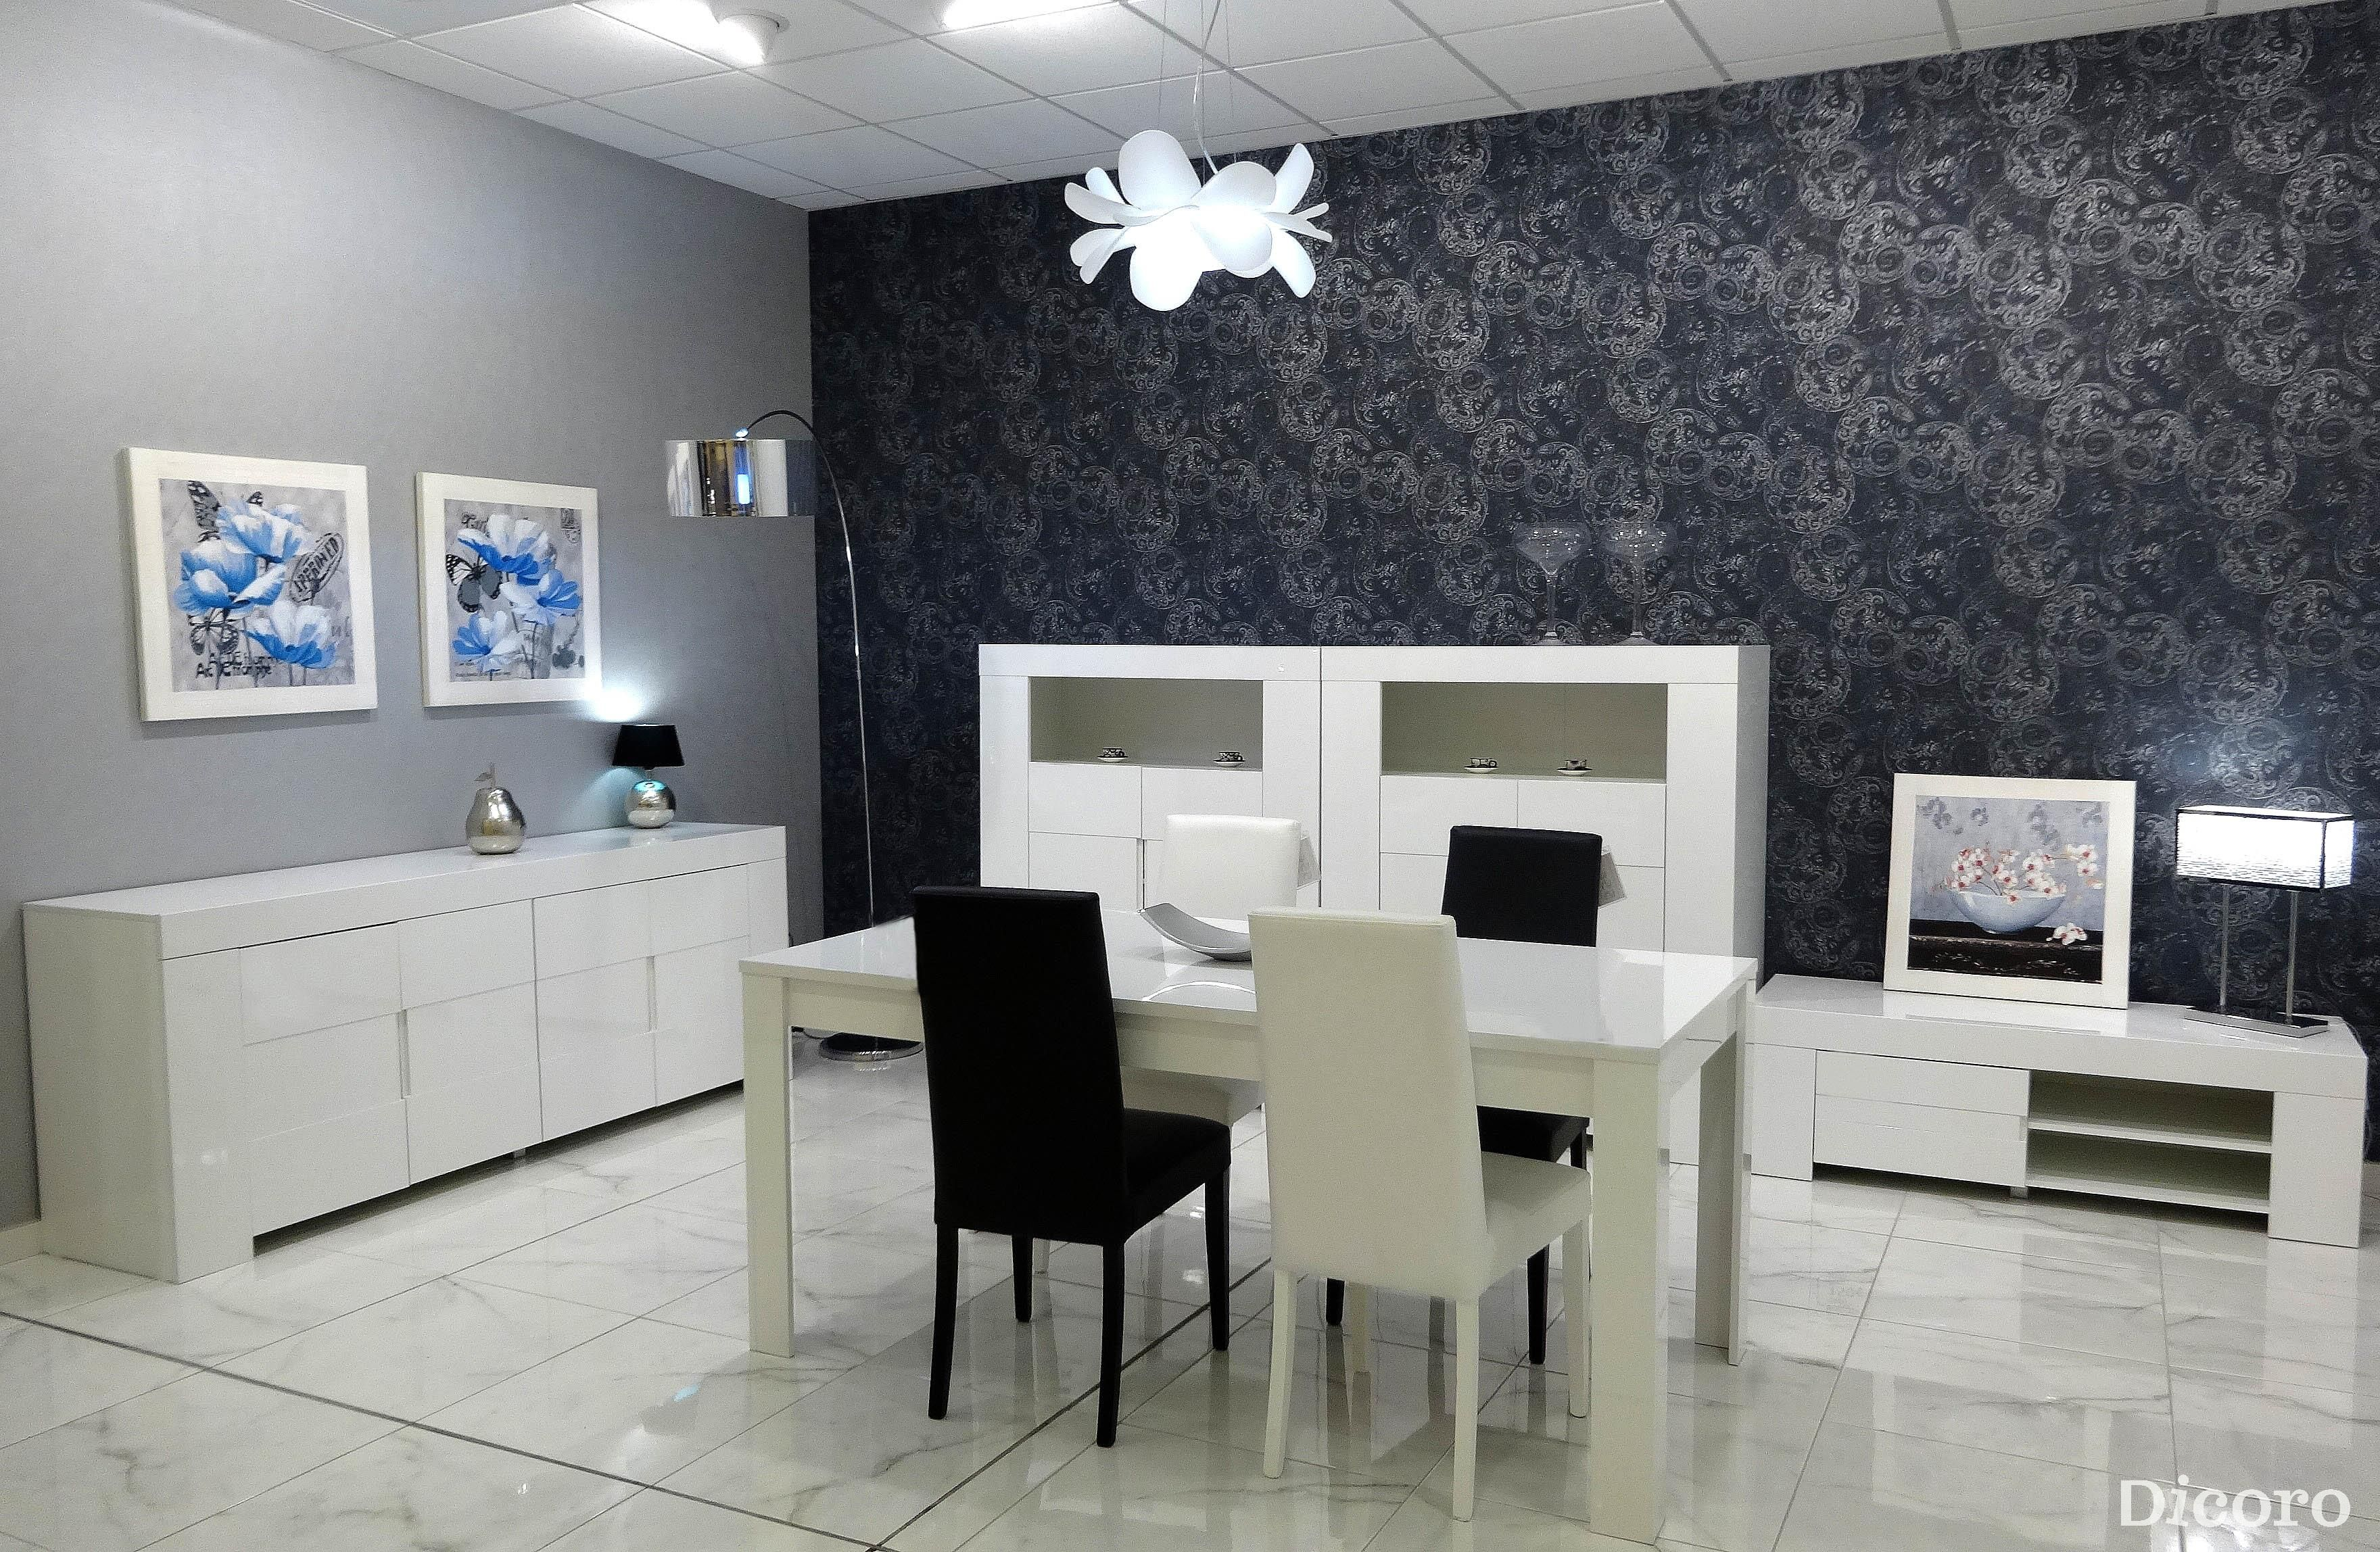 El sal n hermes es la apuesta segura para tu decoraci n for Ideas para decorar tu salon